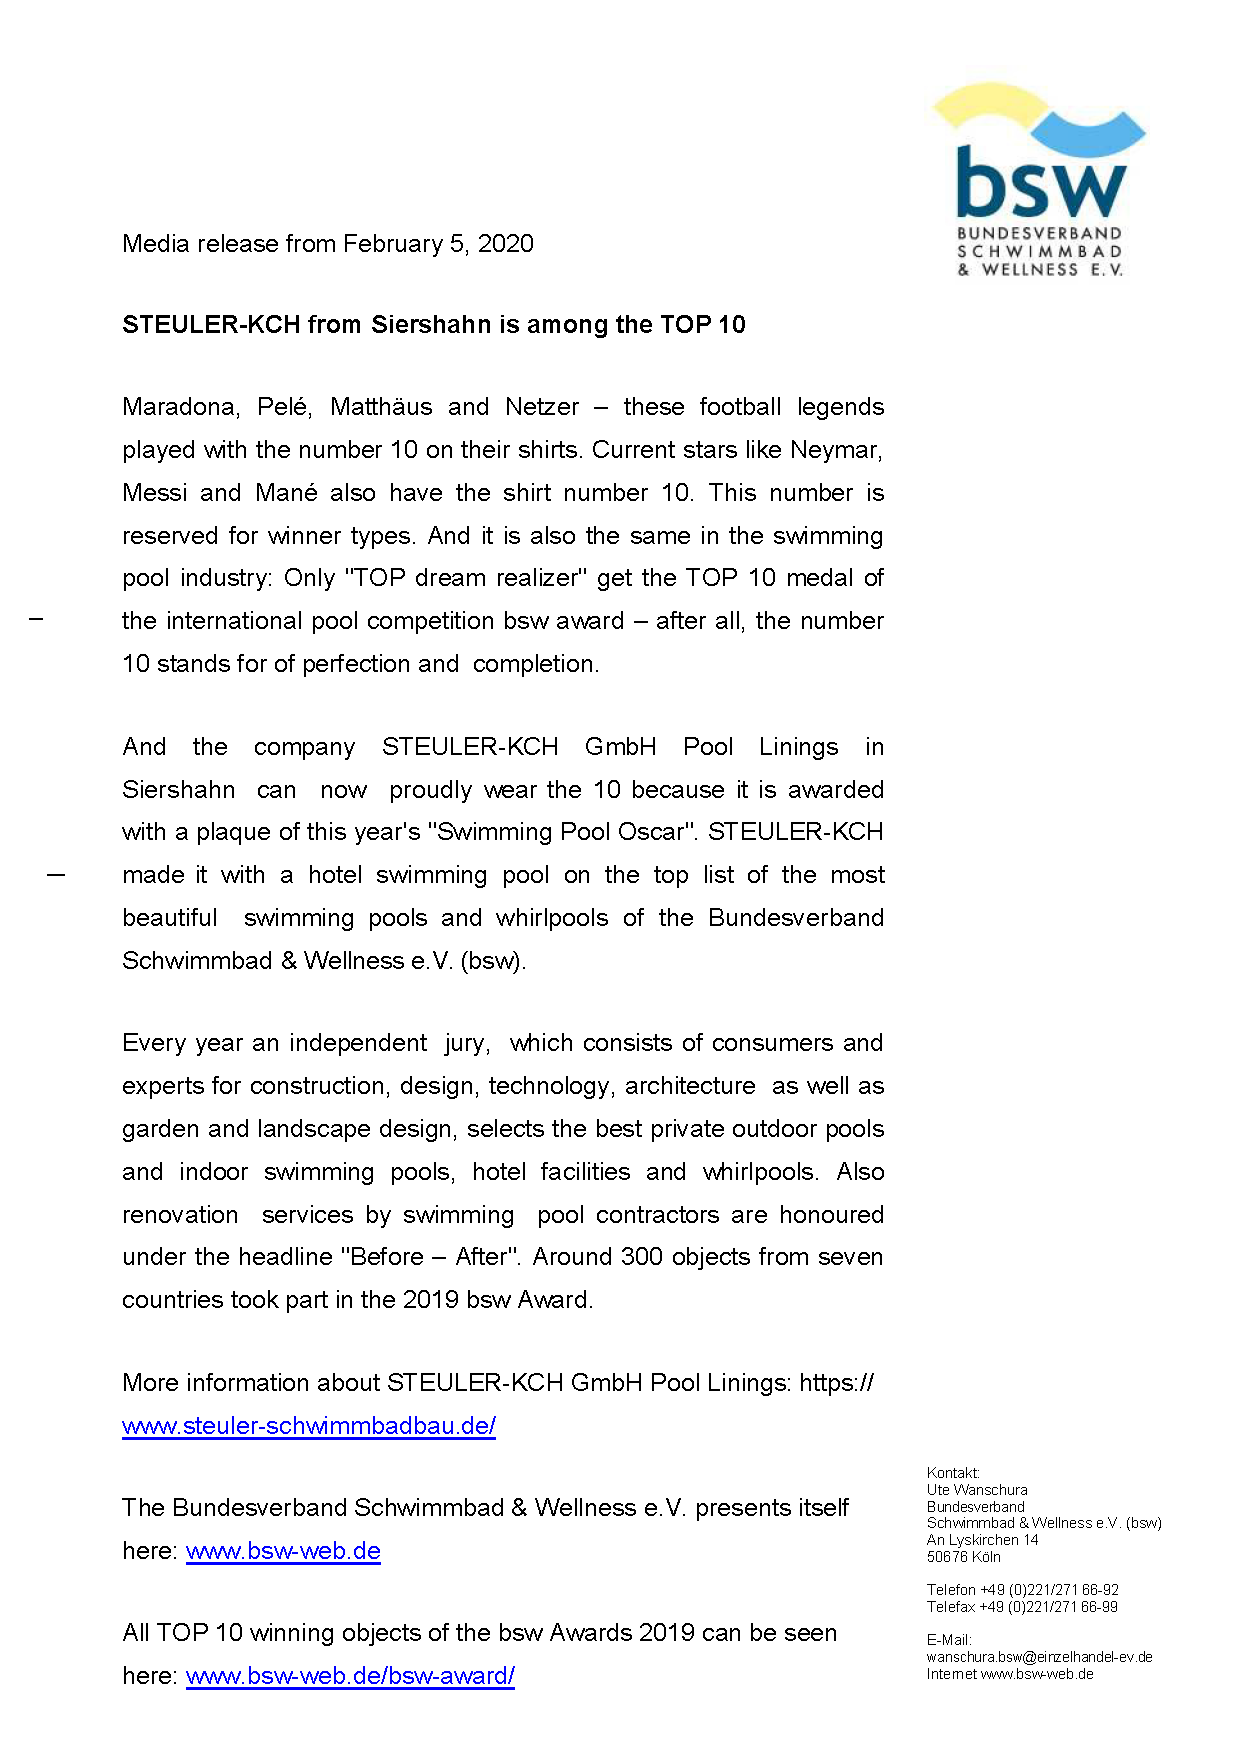 bsw media information about the awarded swimming pool of STEULER-KCH in this years nomination.